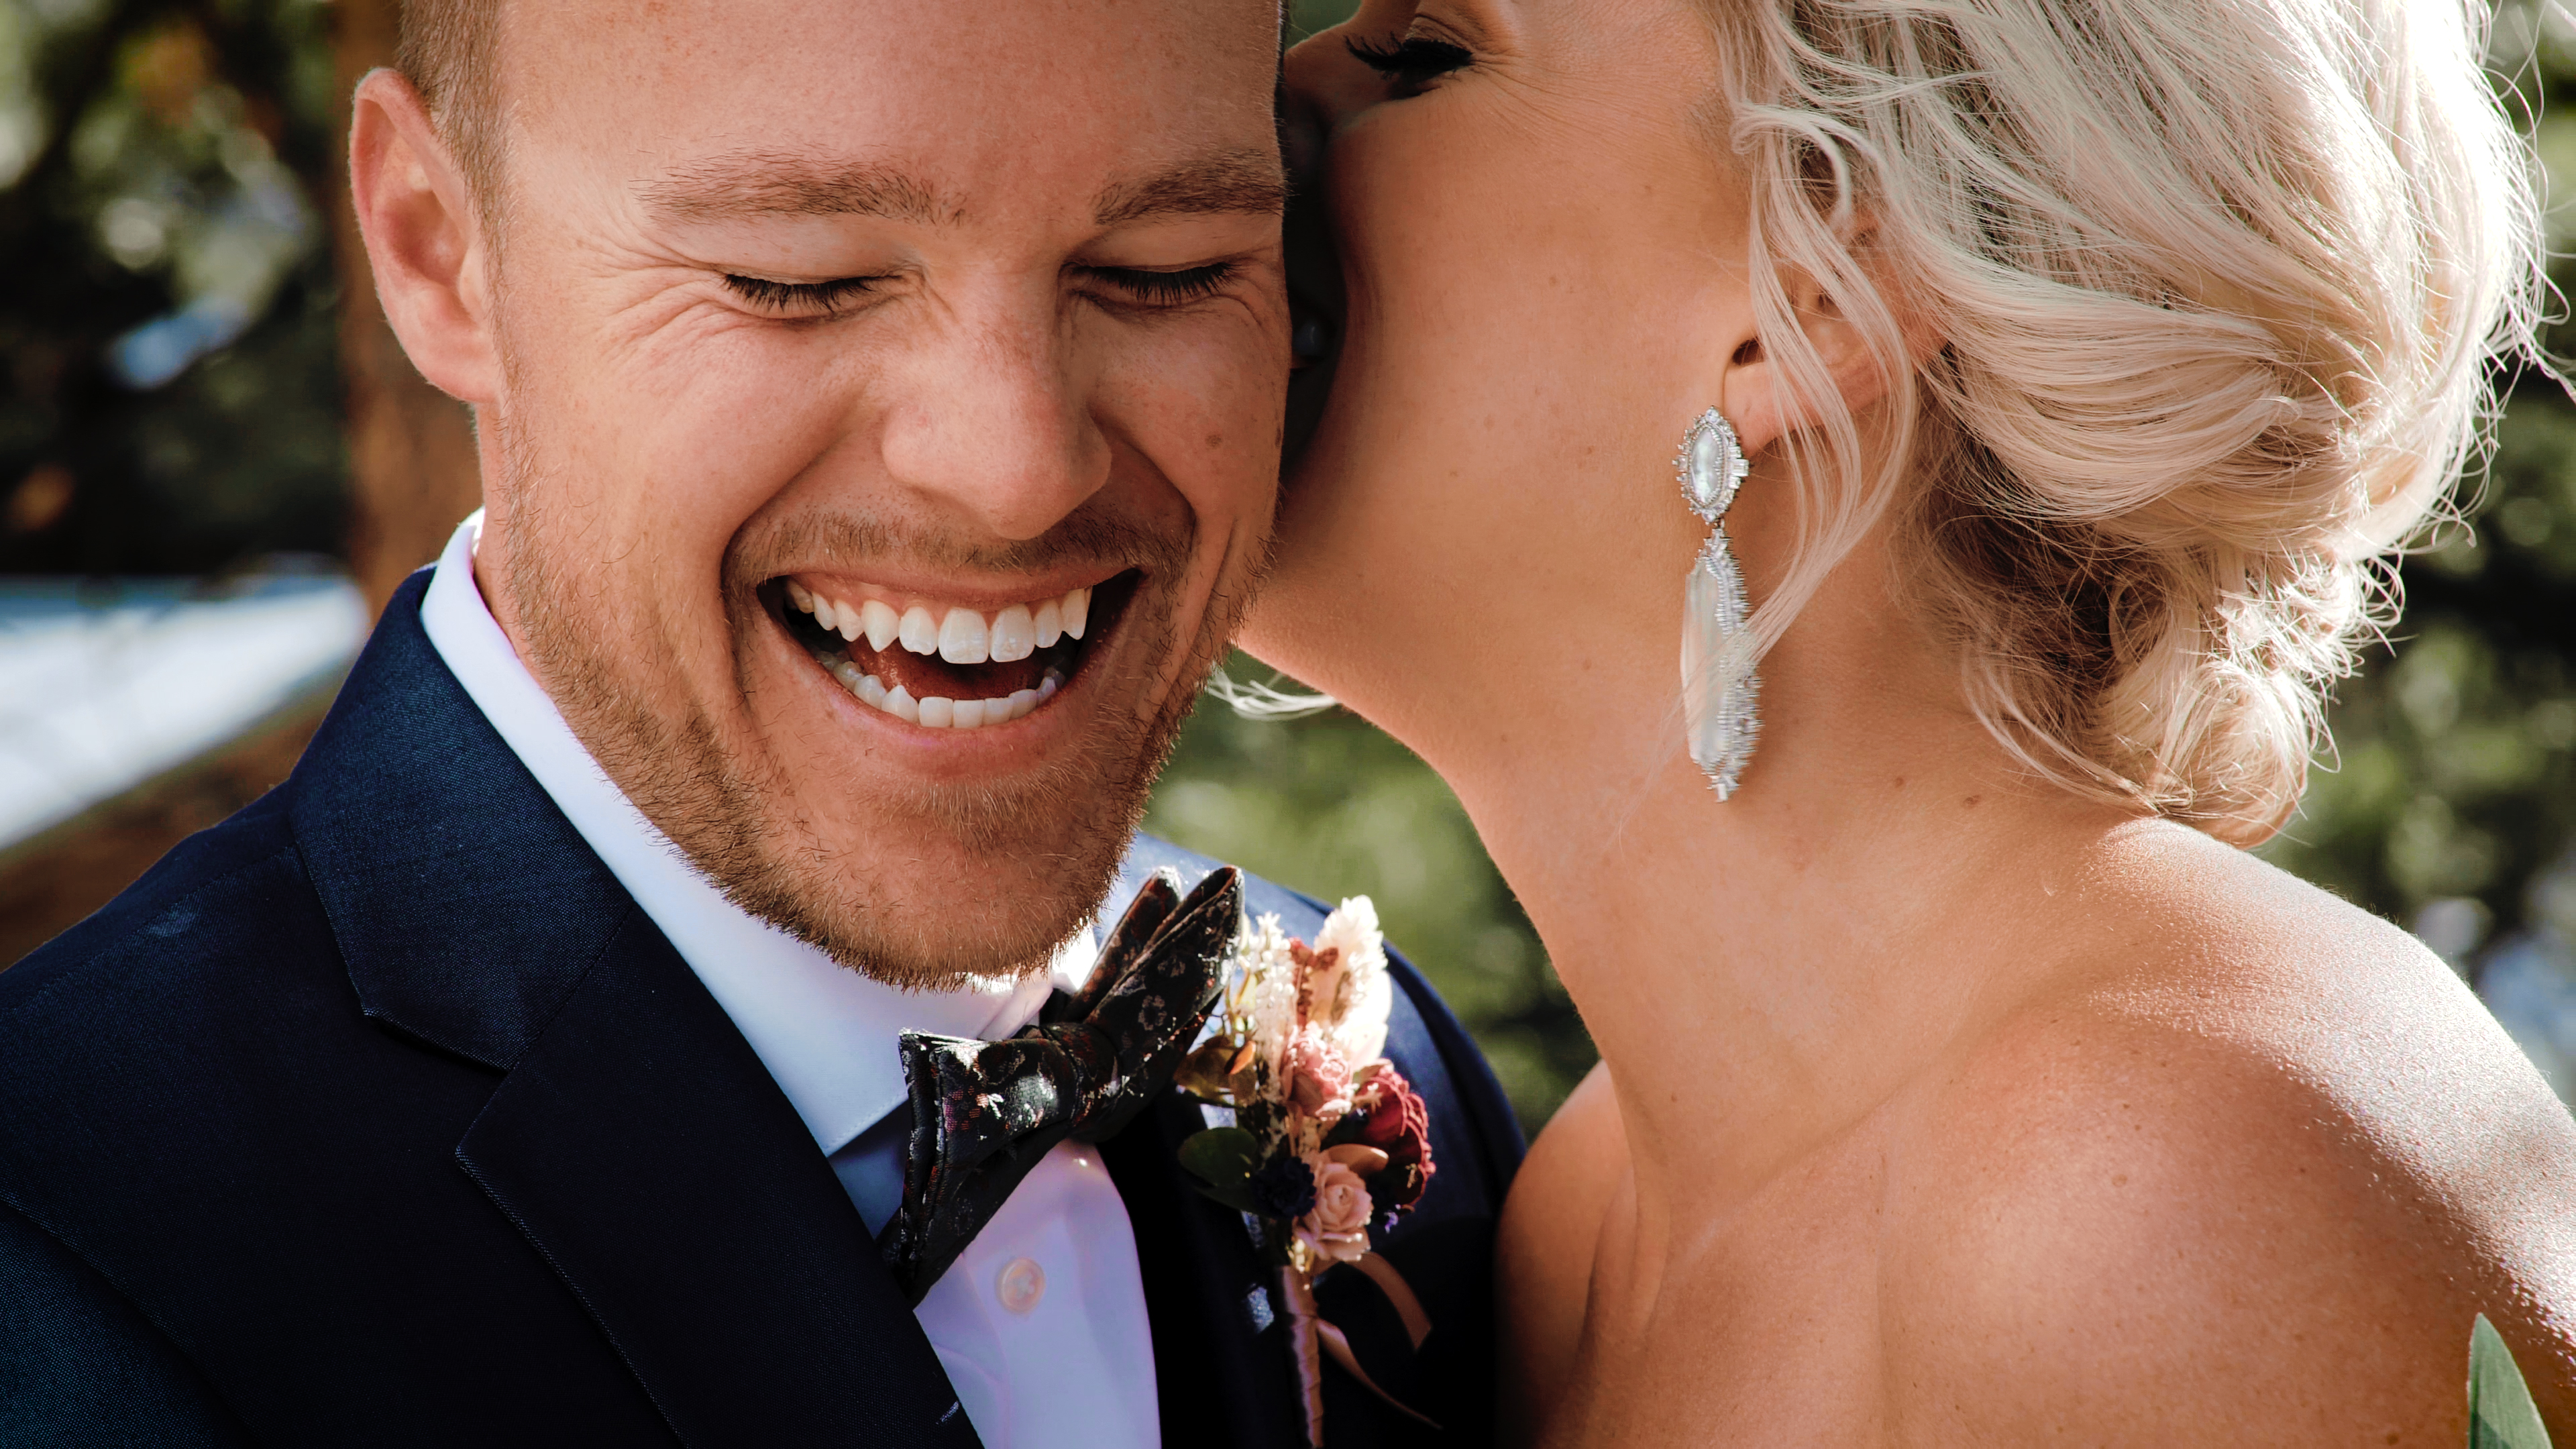 Bethany + Corey | Estes Park, Colorado | Black Canyon Inn